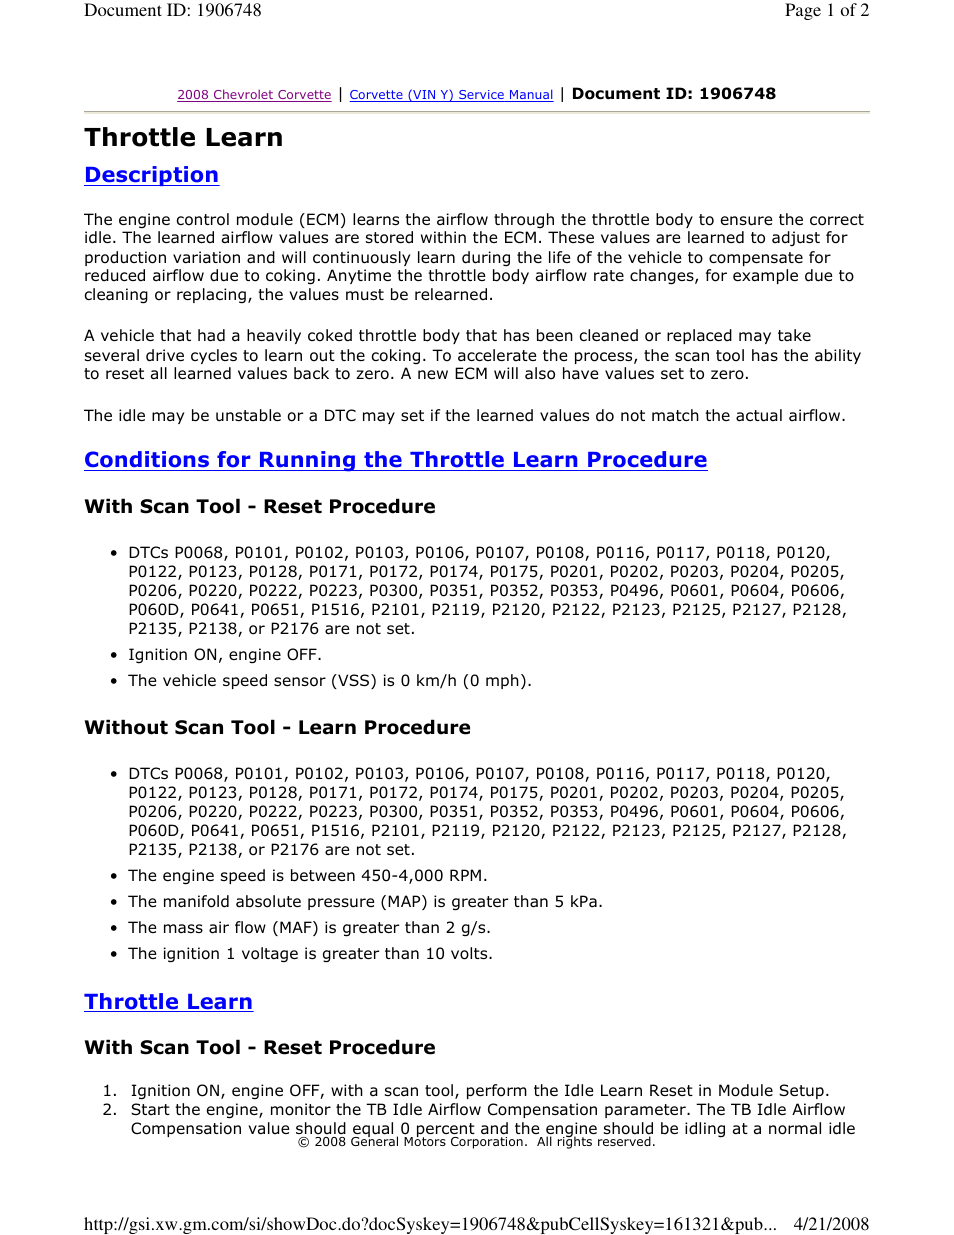 Lingenfelter C6 Corvette Throttle Learn User Manual | 2 pages